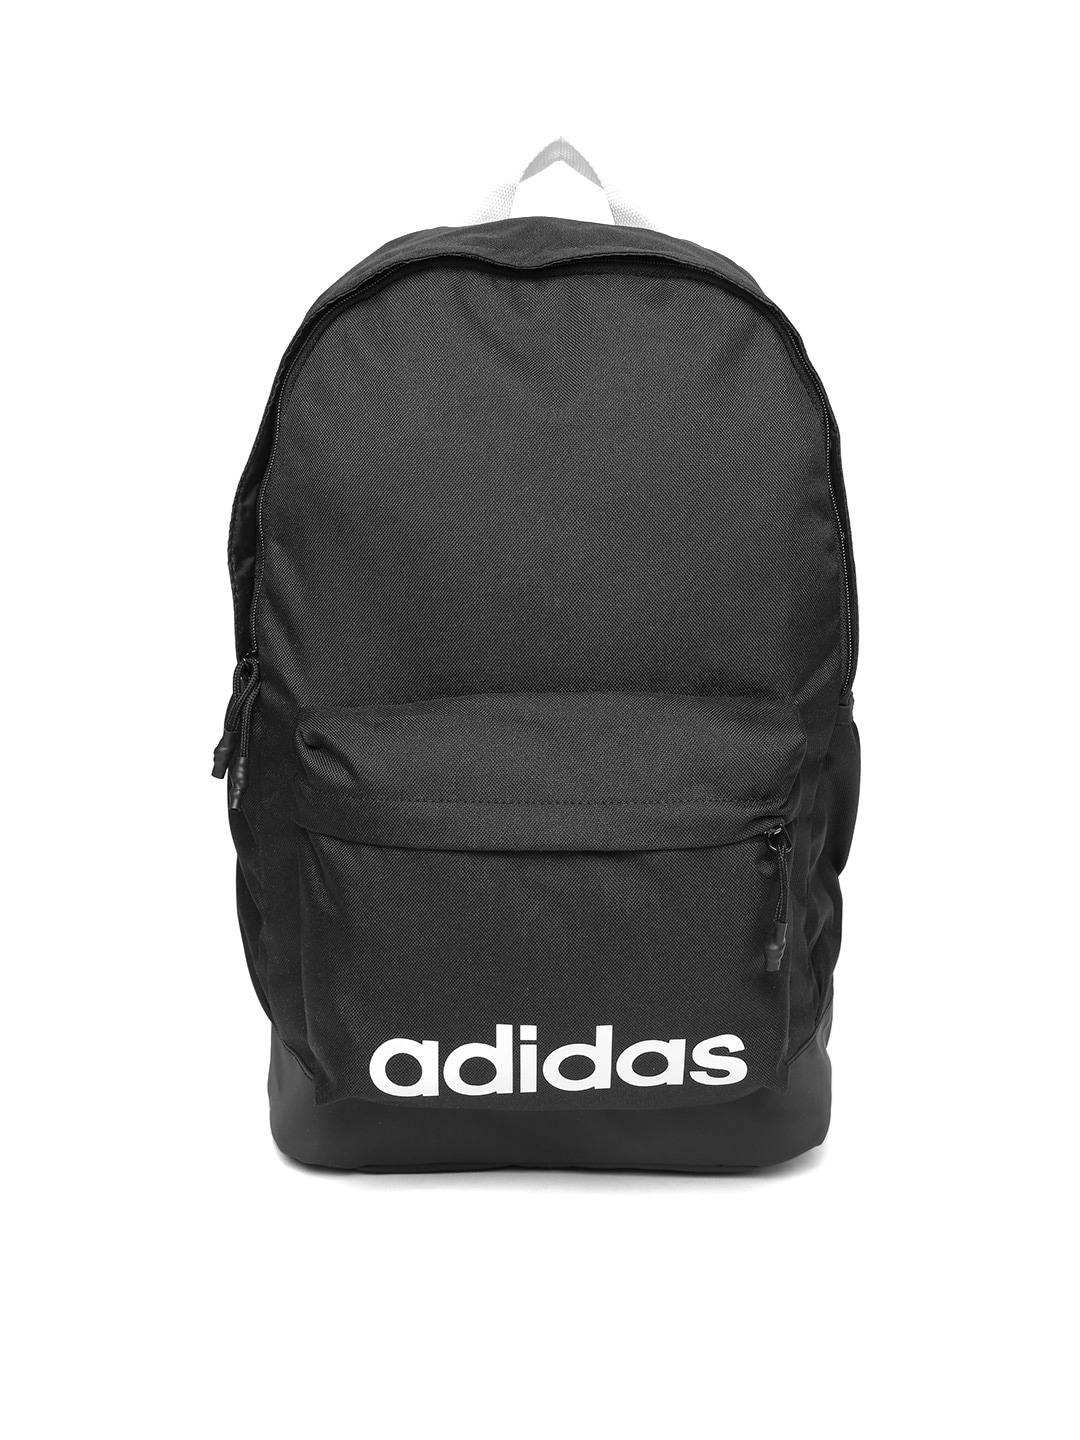 Men Backpack Backpacks - Buy Men Backpack Backpacks online in India 5dd6b73c7791e